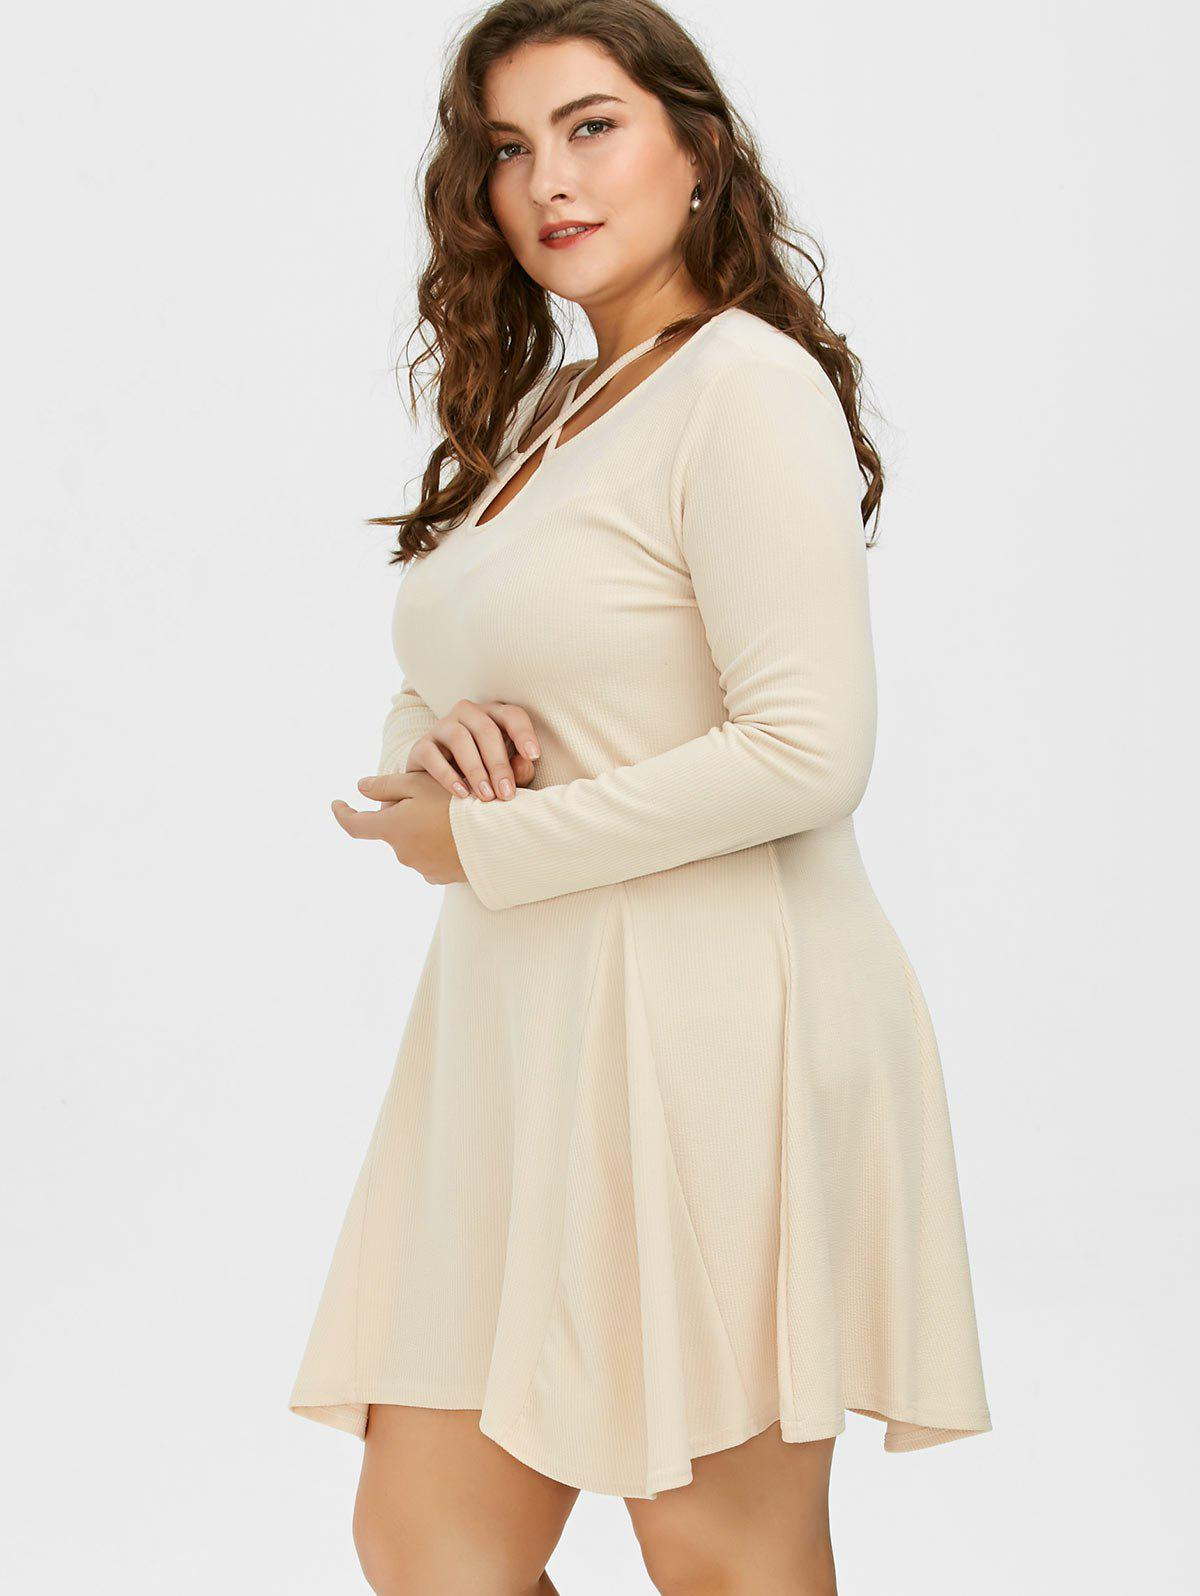 Cutout Plus Size Skater Dress with Long Sleeves - LIGHT KHAKI 4XL